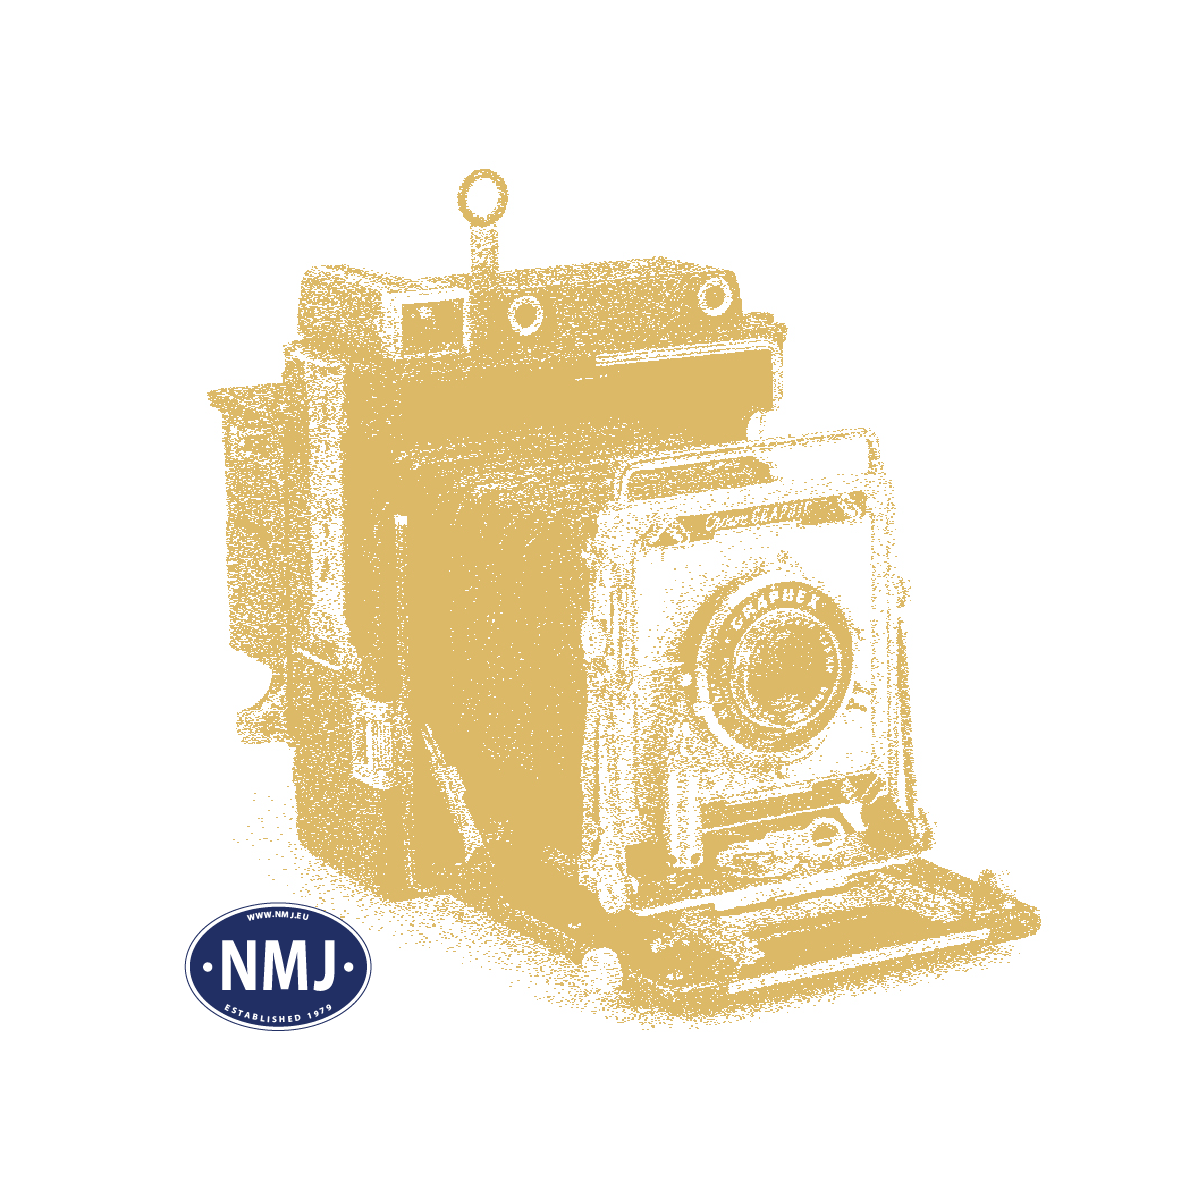 Topline Lokomotiver, NMJ Topline model of the NSB BM69.11 in the latest NSB design, red, Silver, Grey, DC.  , NMJT84.301